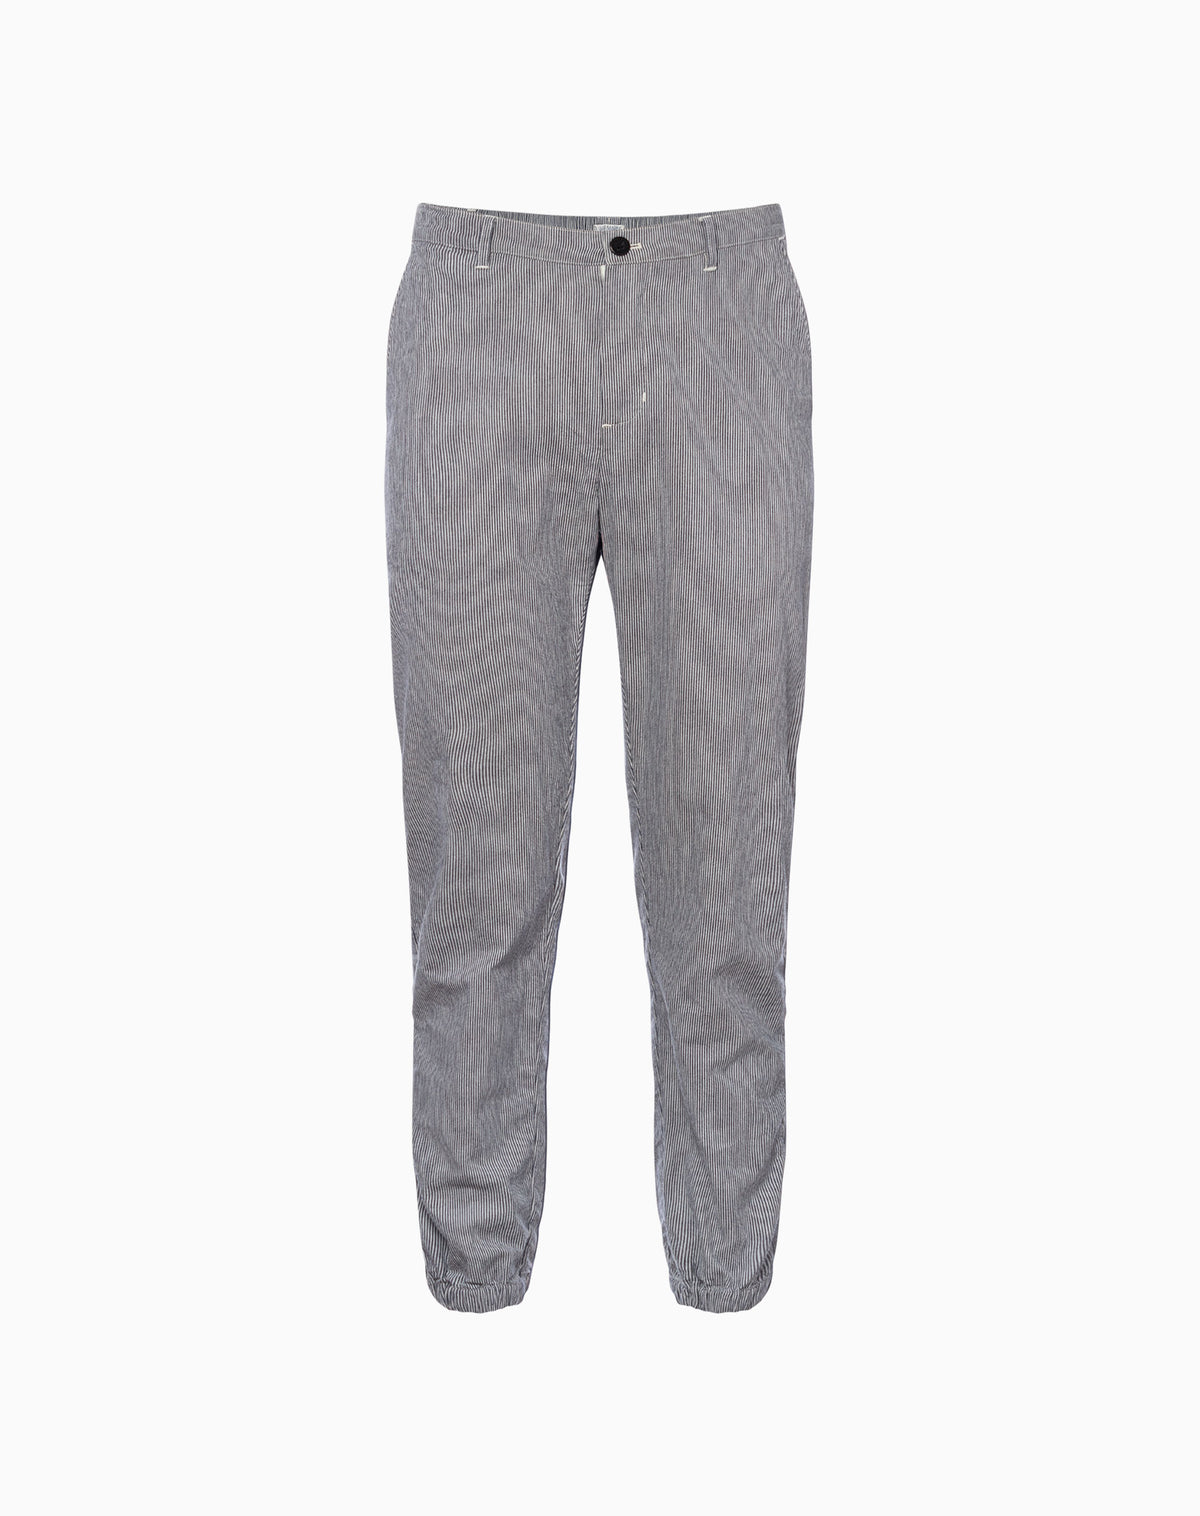 Deck Jogger in Pincord